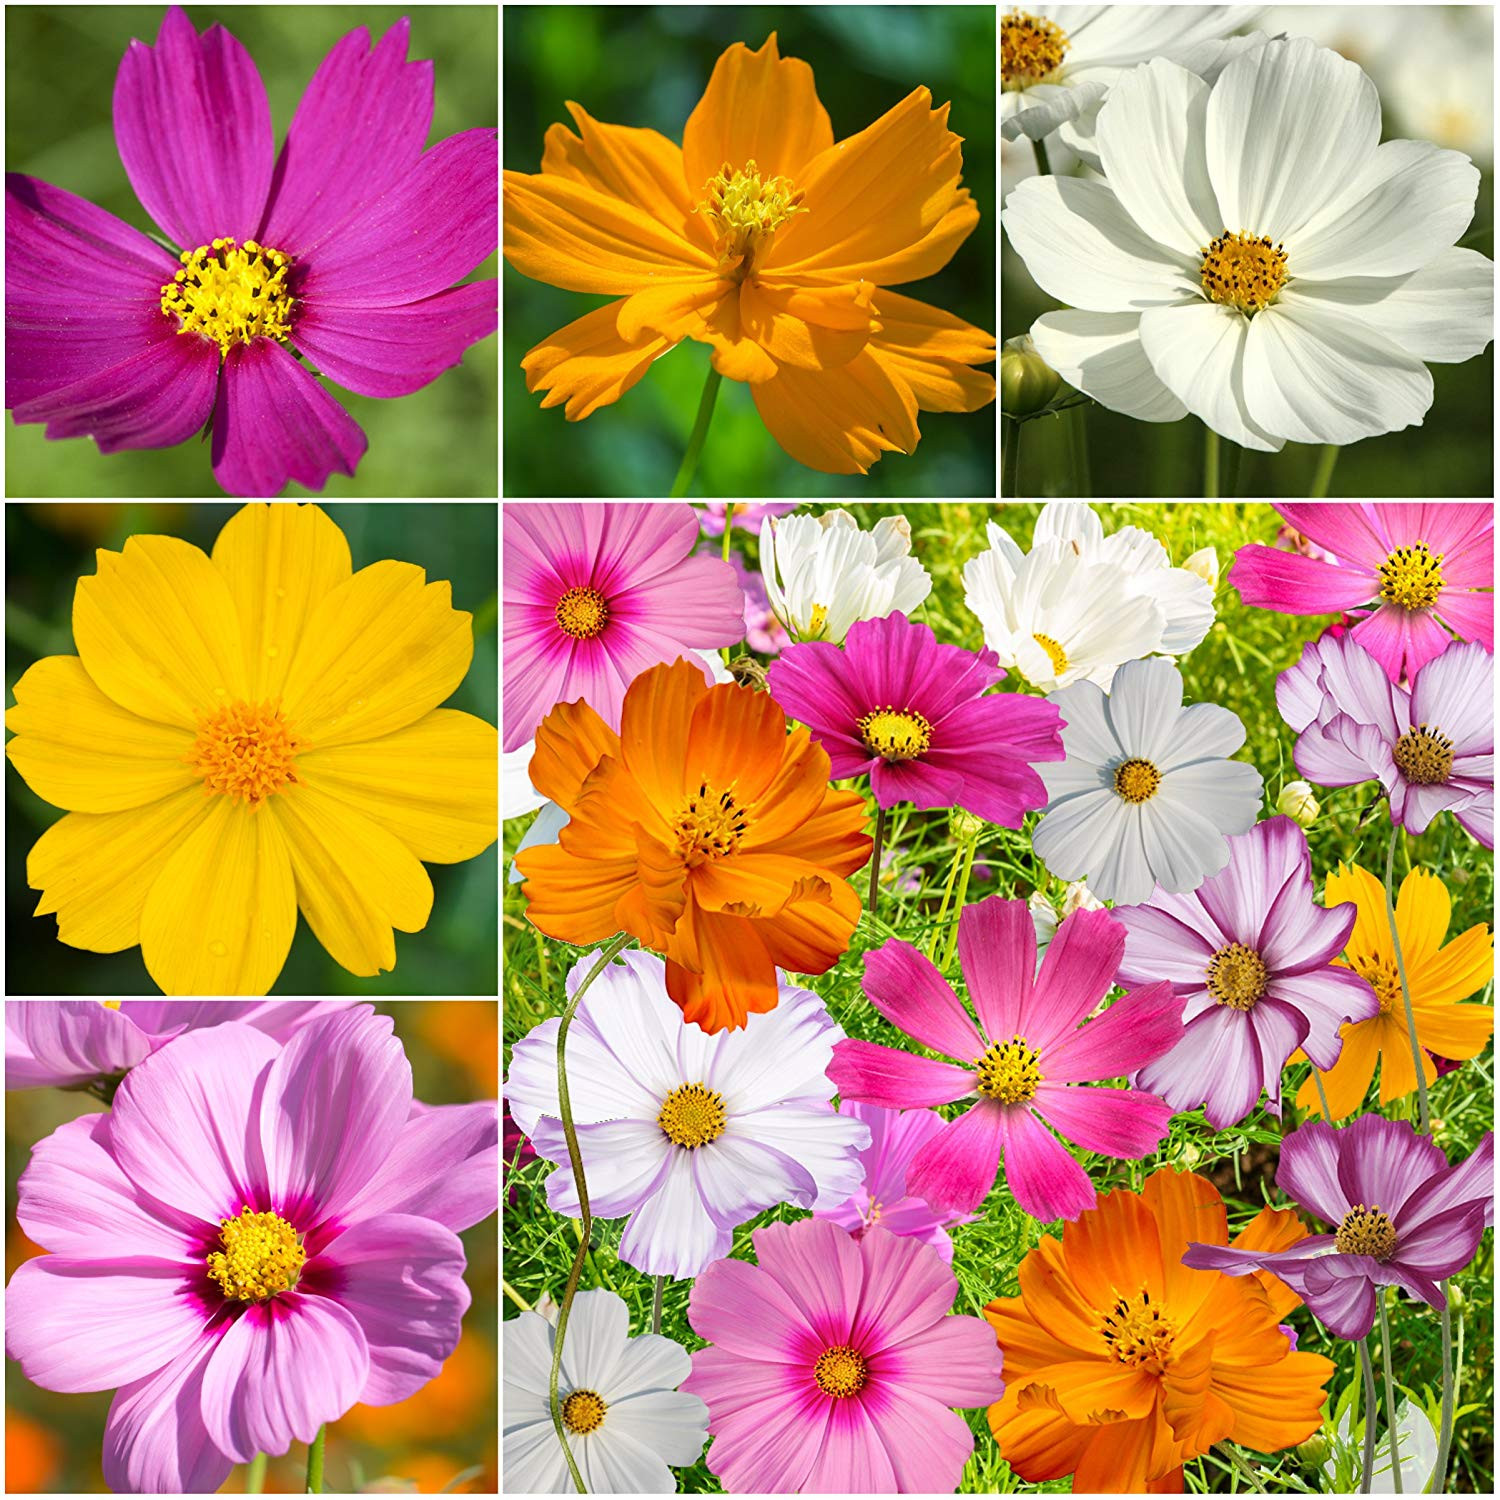 Amazon Bulk Package of 7 000 Seeds Crazy Mix Cosmos Cosmos bipinnatus Non GMO Seeds by Seed Needs Garden & Outdoor